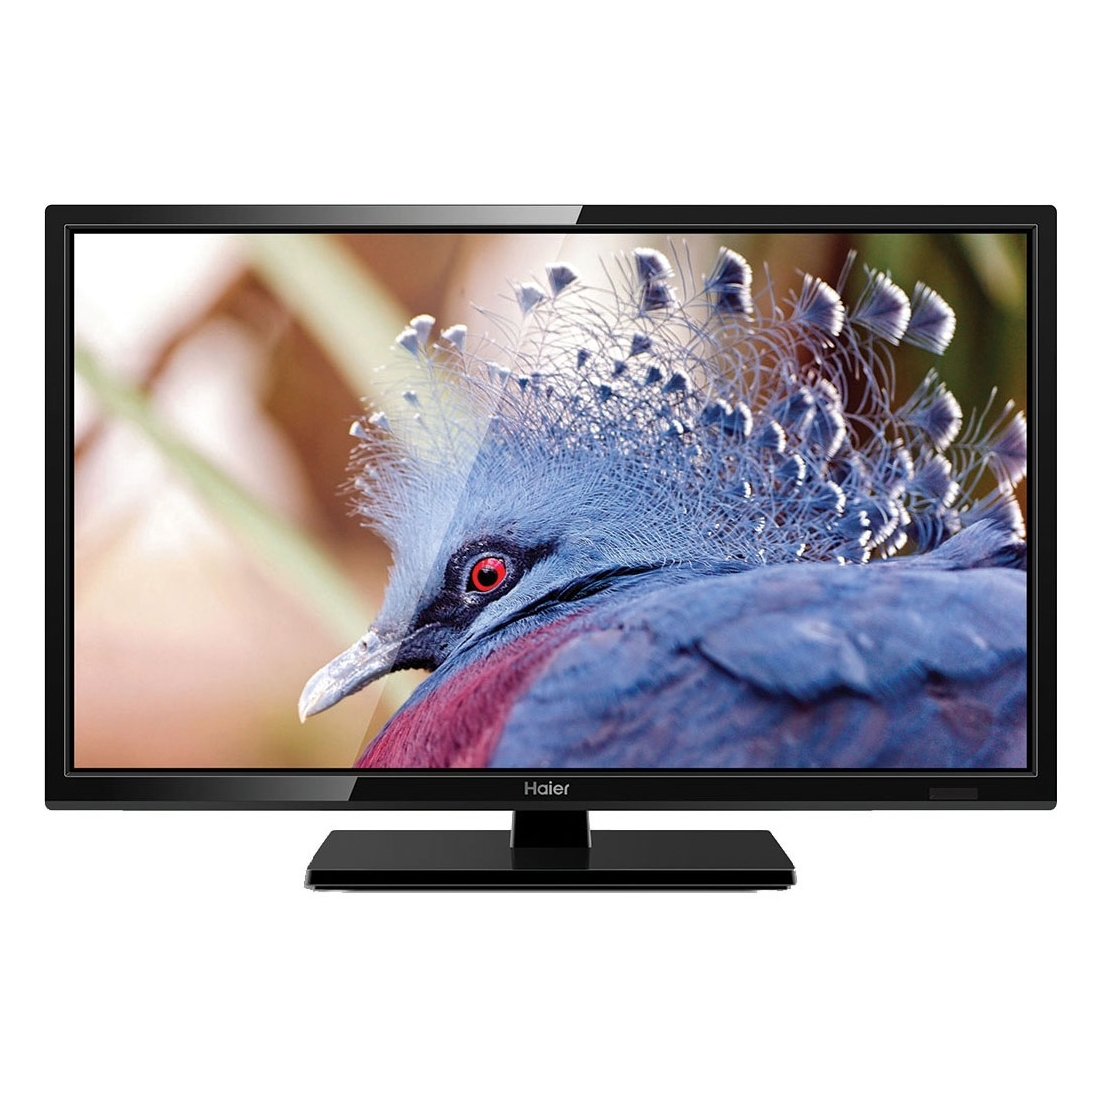 "Haier E2000 24e2000 24"" 720p Led-lcd Tv - 16:9 - Black - ..."